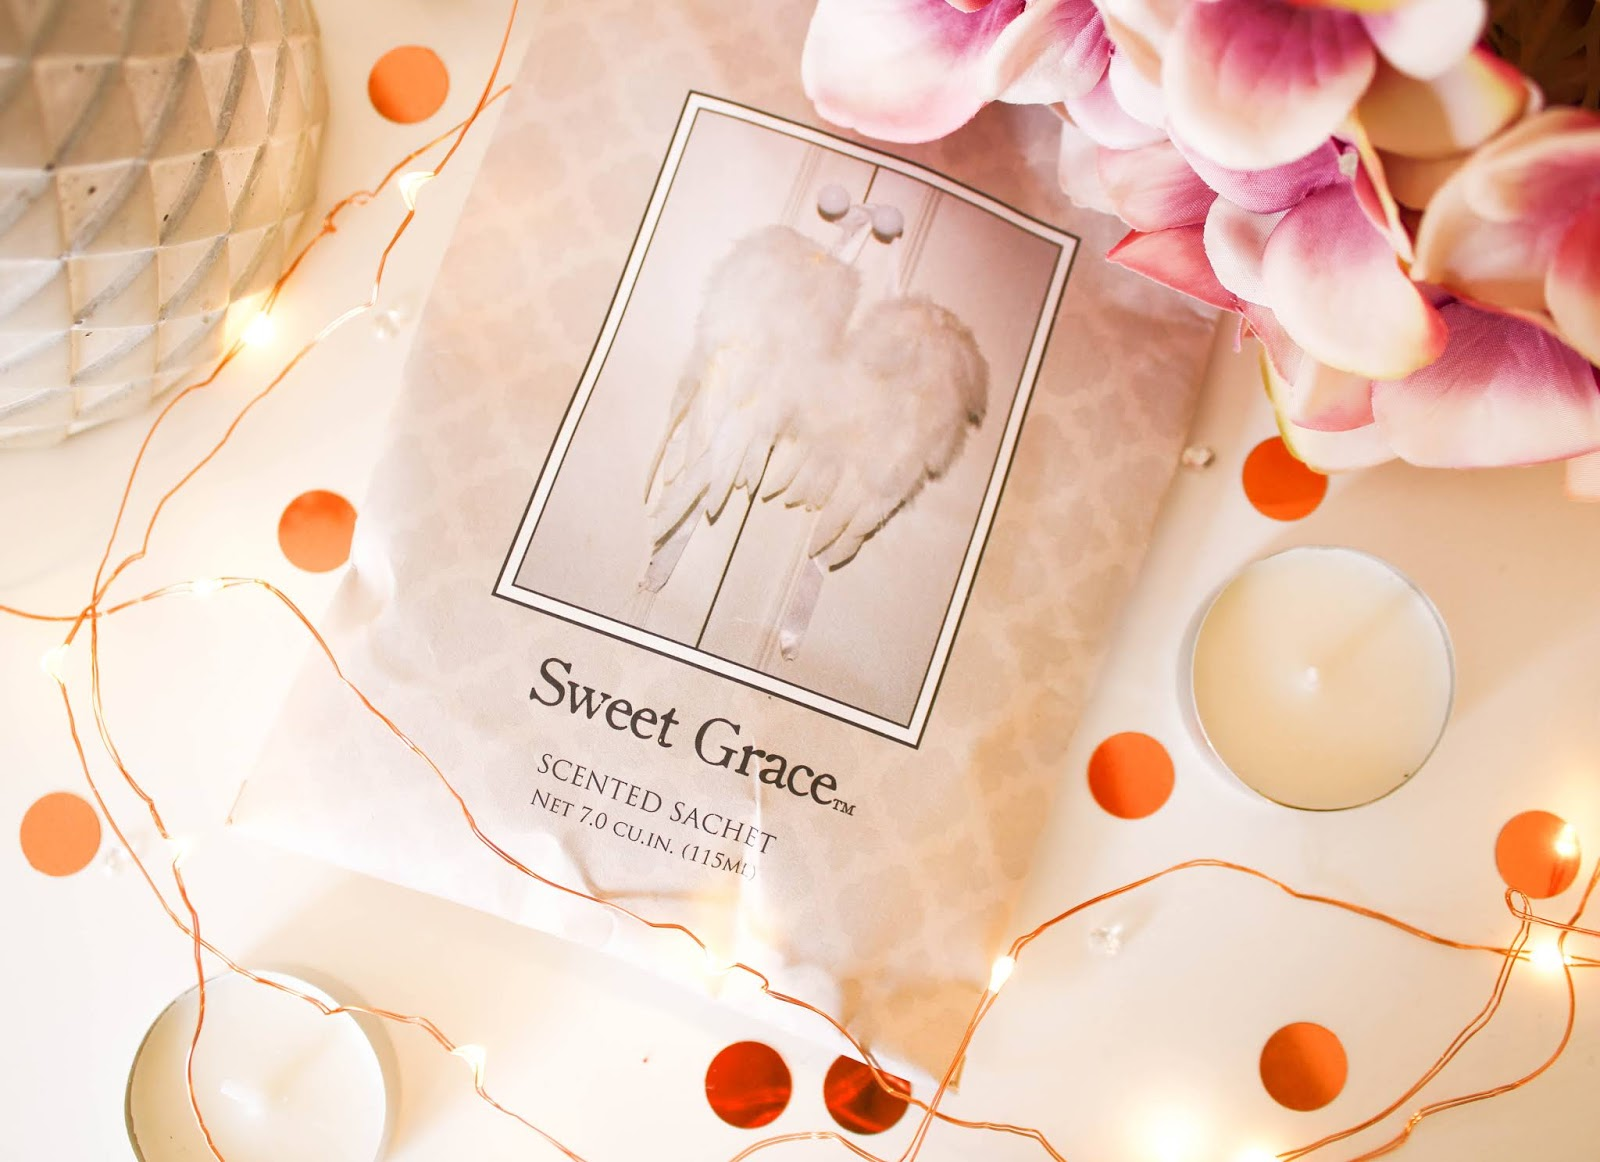 Bridgewater Candle Company Sweet Grace Scented Sachet